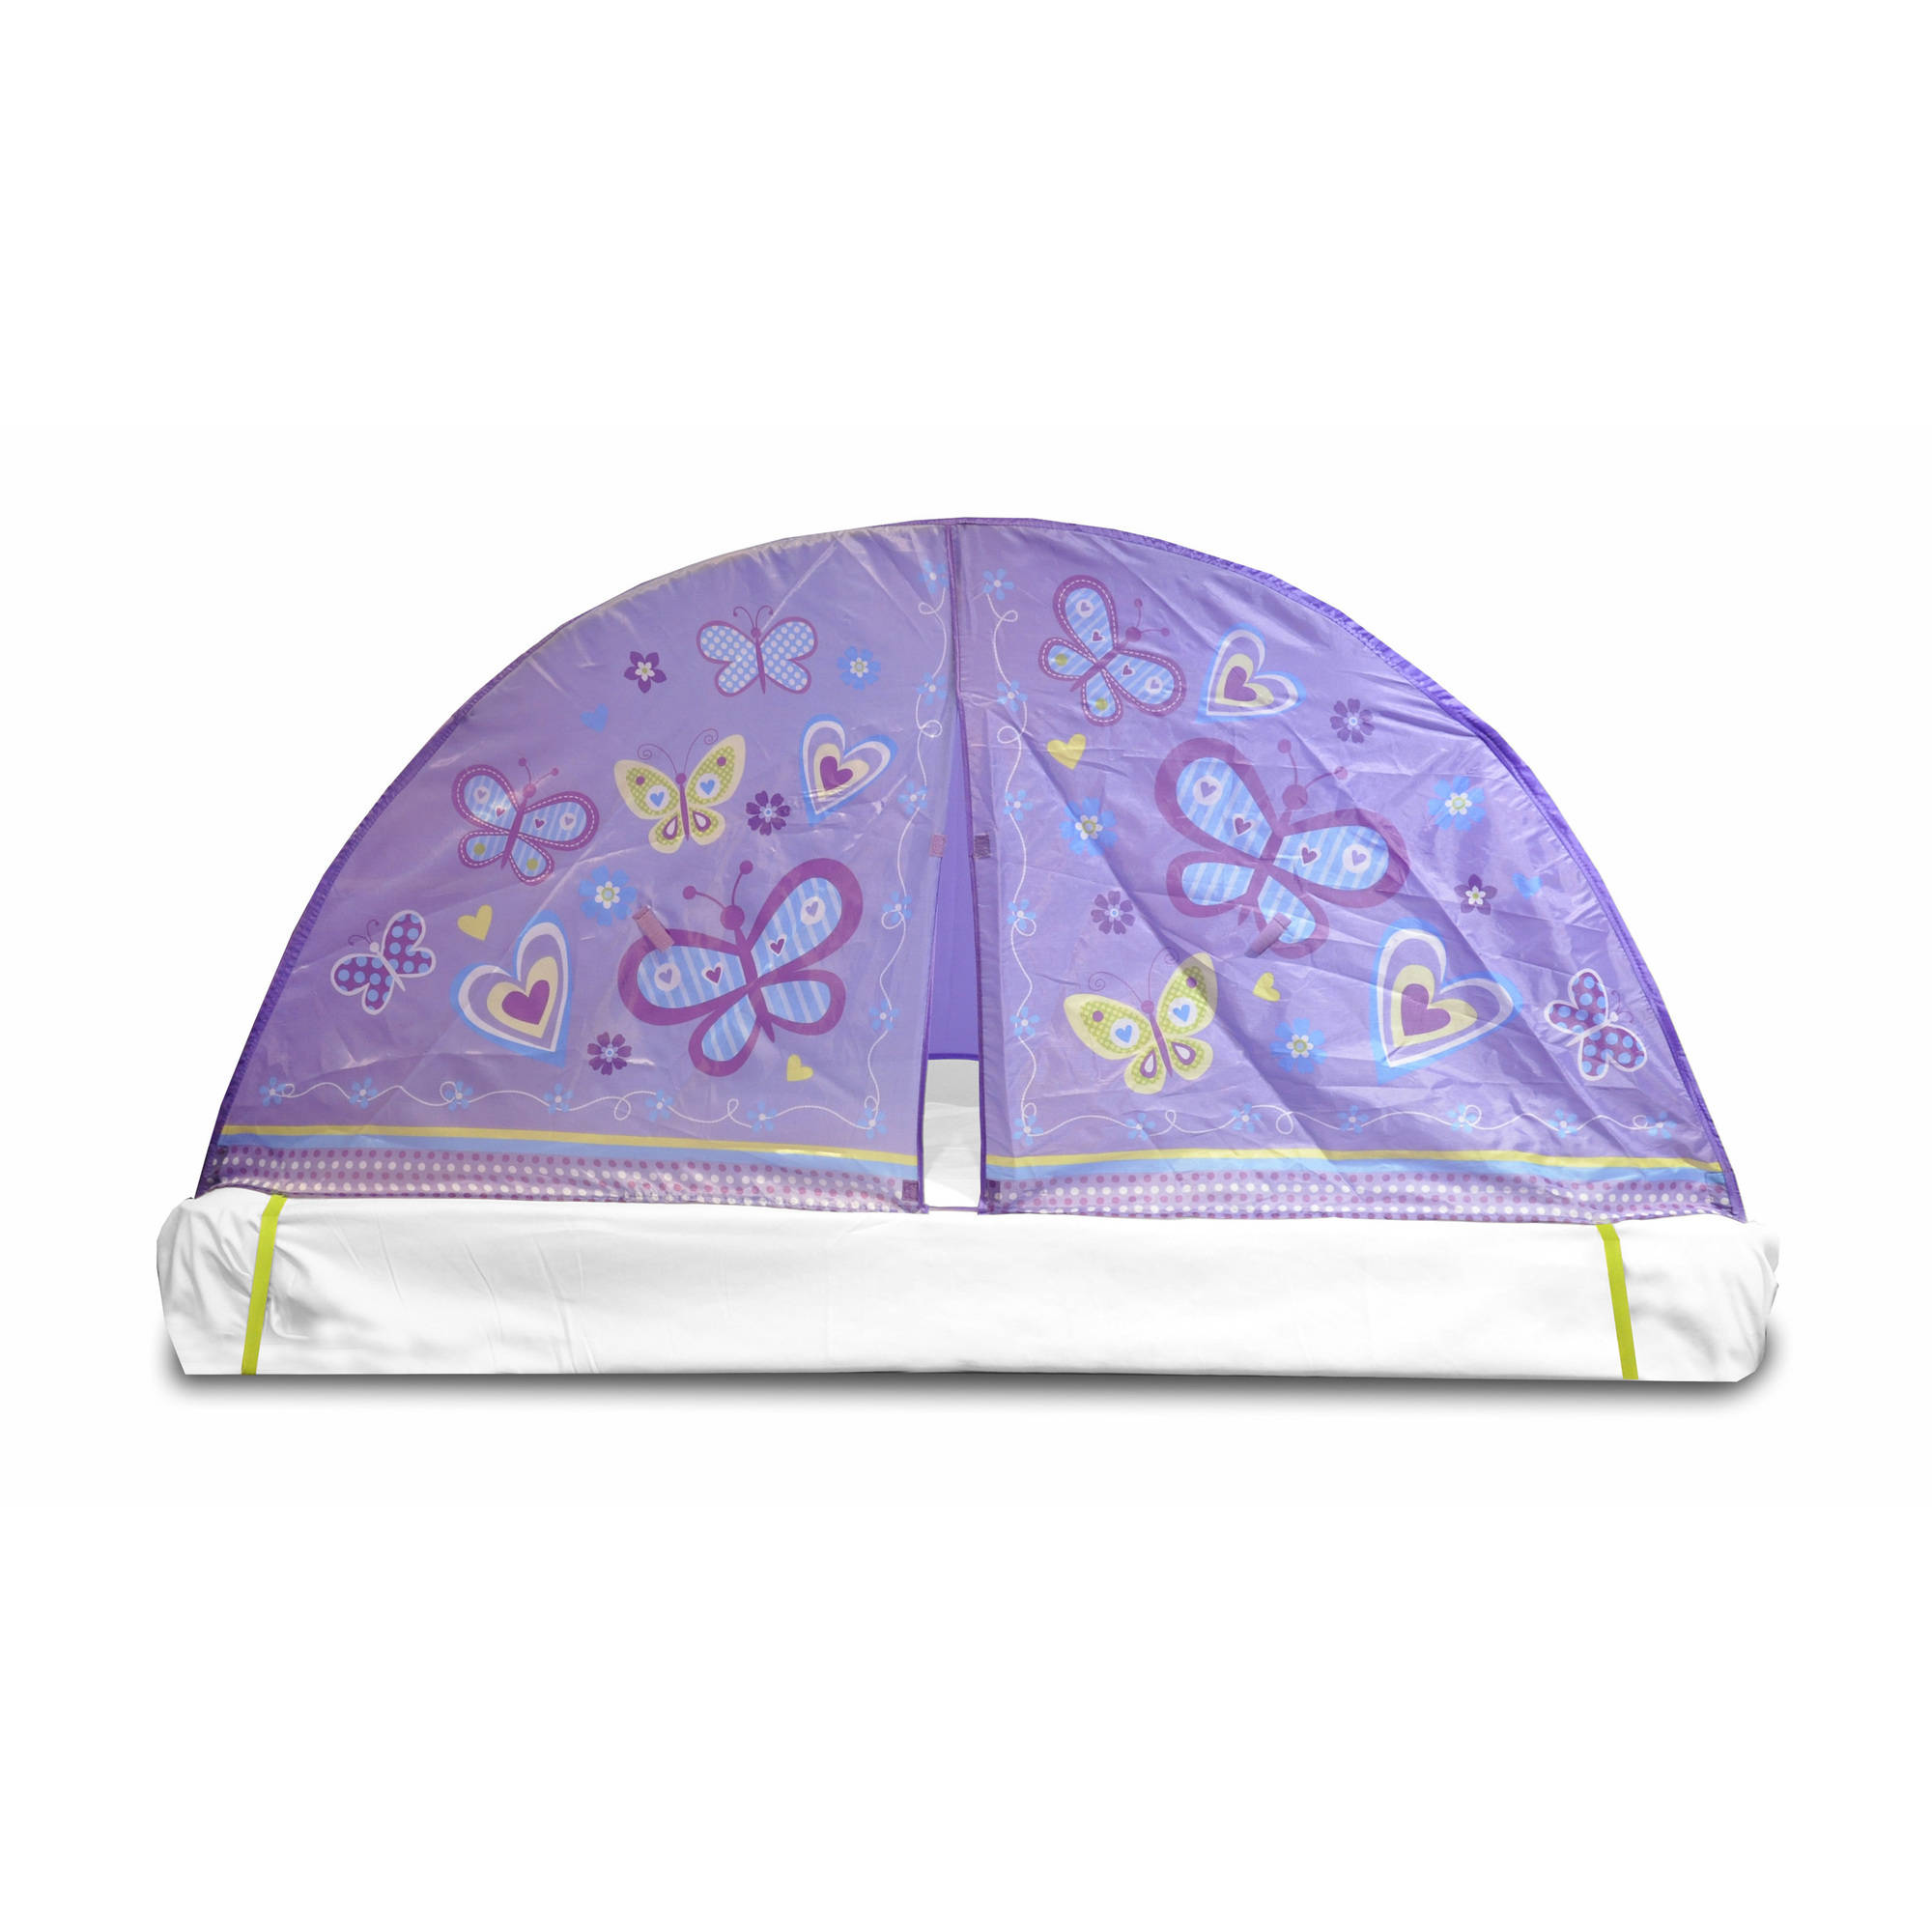 Kids Scene Lavender Butterfly Play Bed Tent Image 2 of 2  sc 1 st  Walmart : childrens tents at walmart - memphite.com